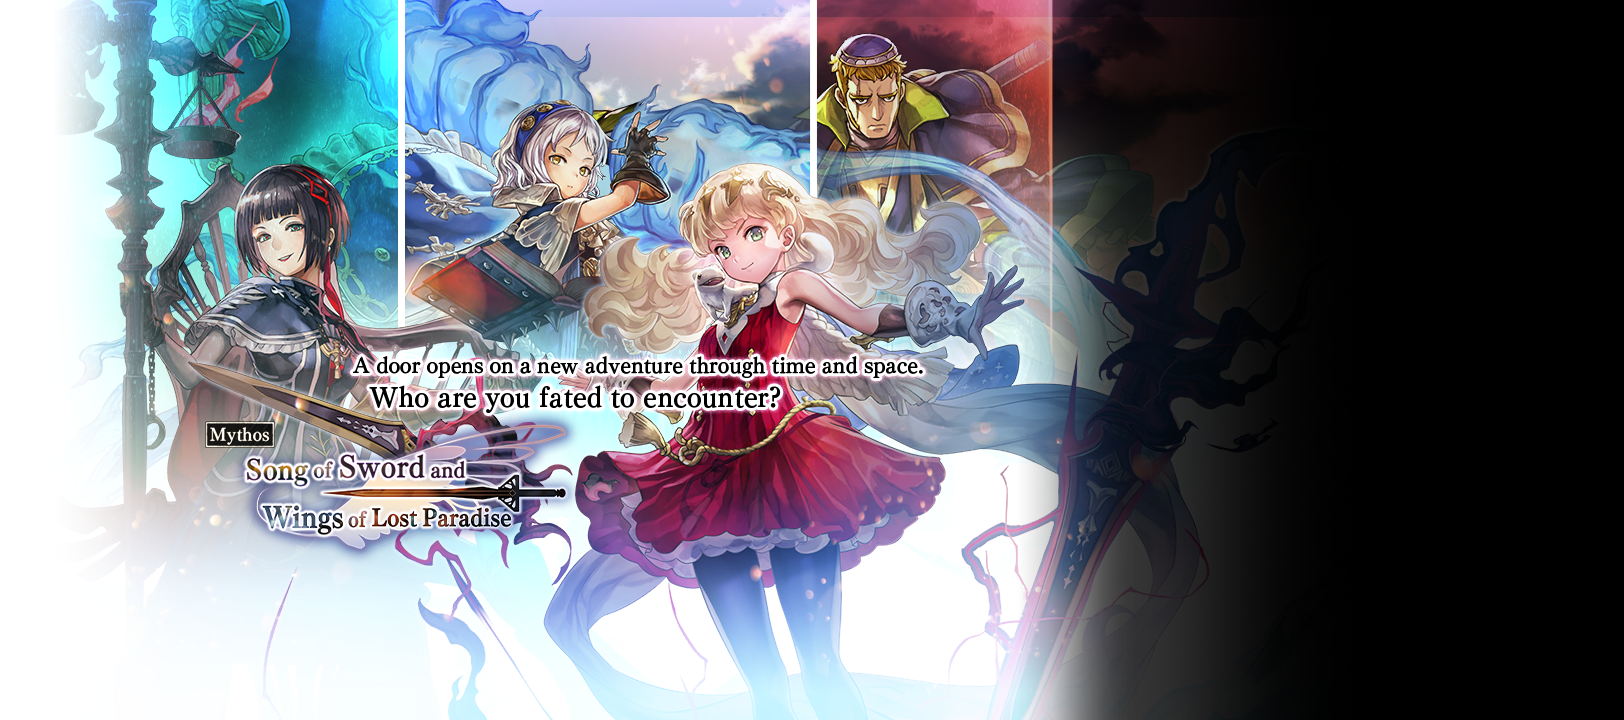 Encounter Song of Sword and Wings of Lost Paradise (Regular).png